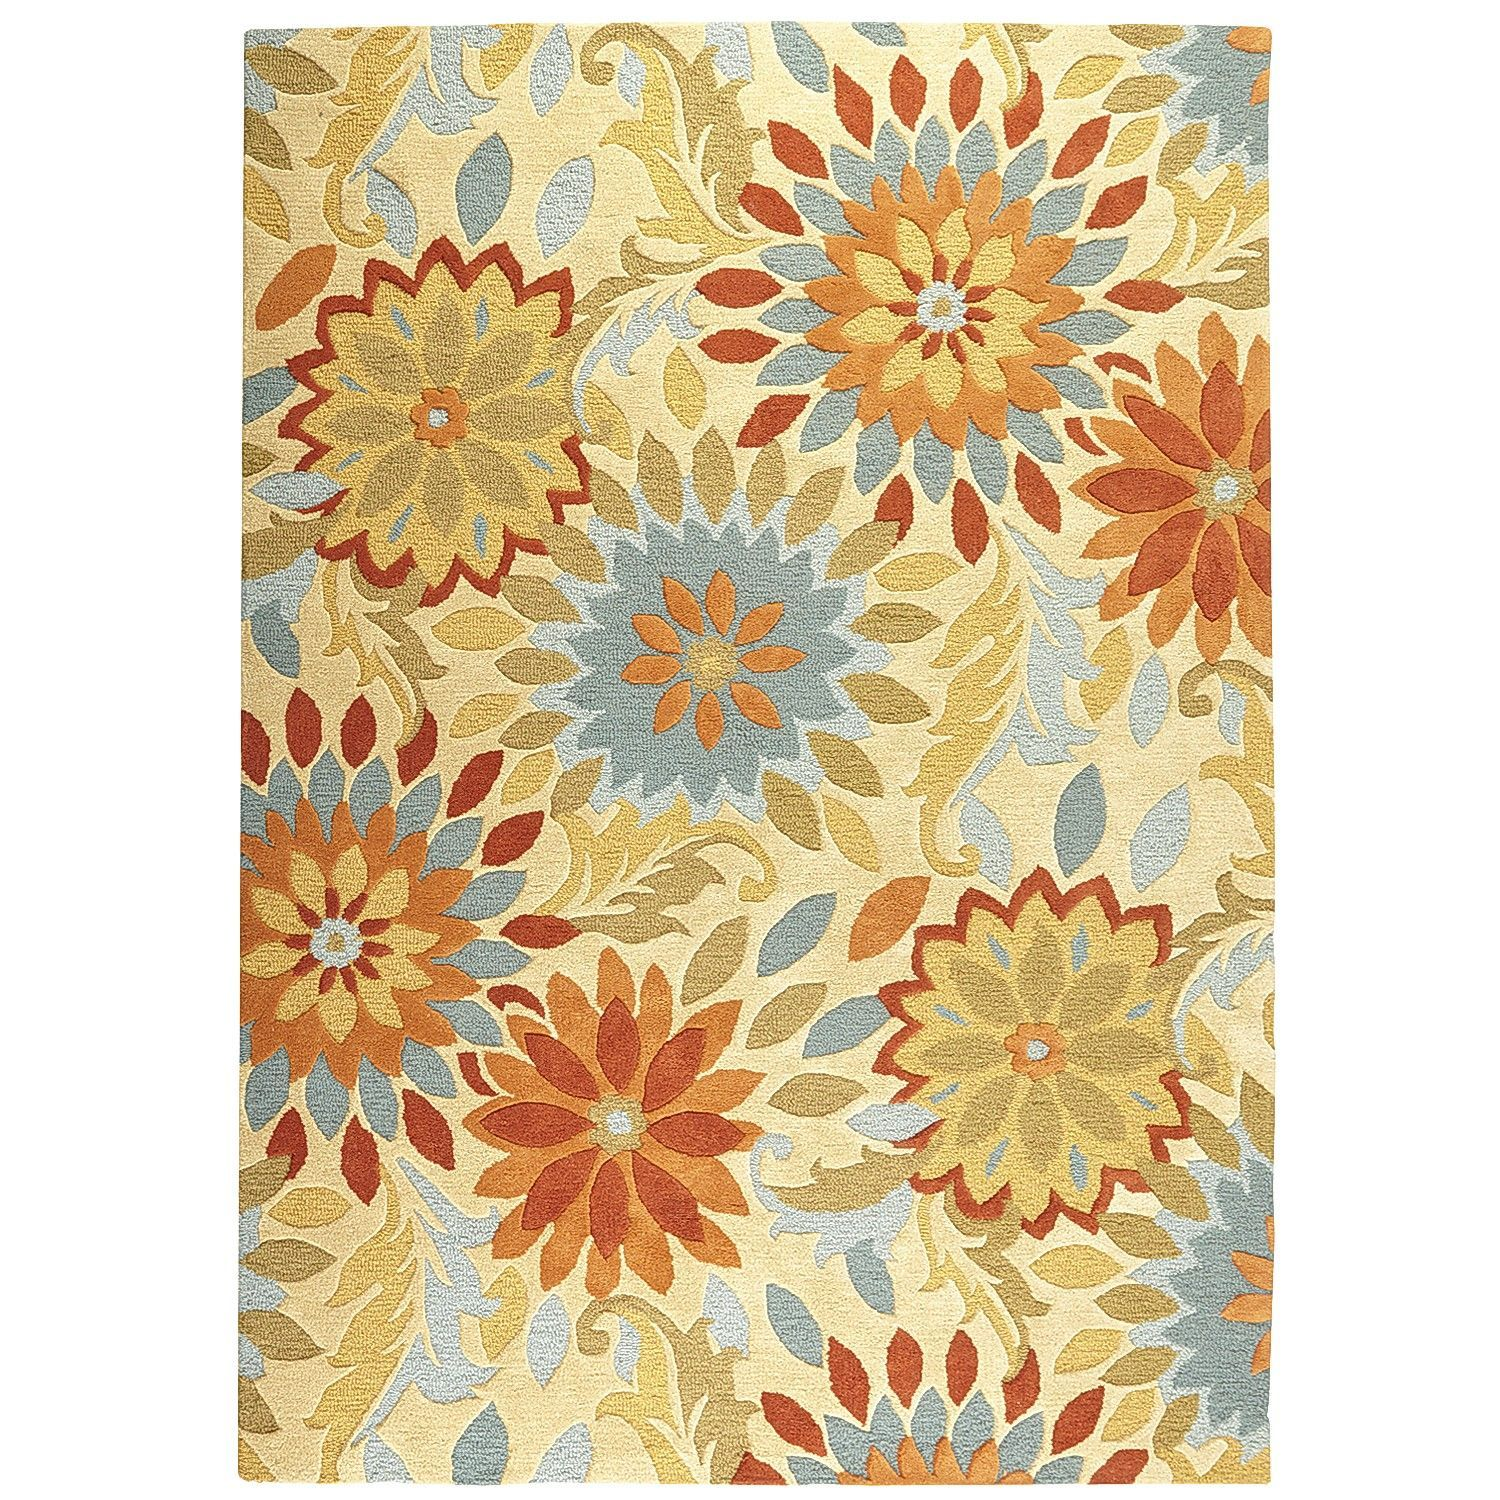 Dazzle Floral Rugs Persimmon Pier 1 Imports Floral Rug Cool